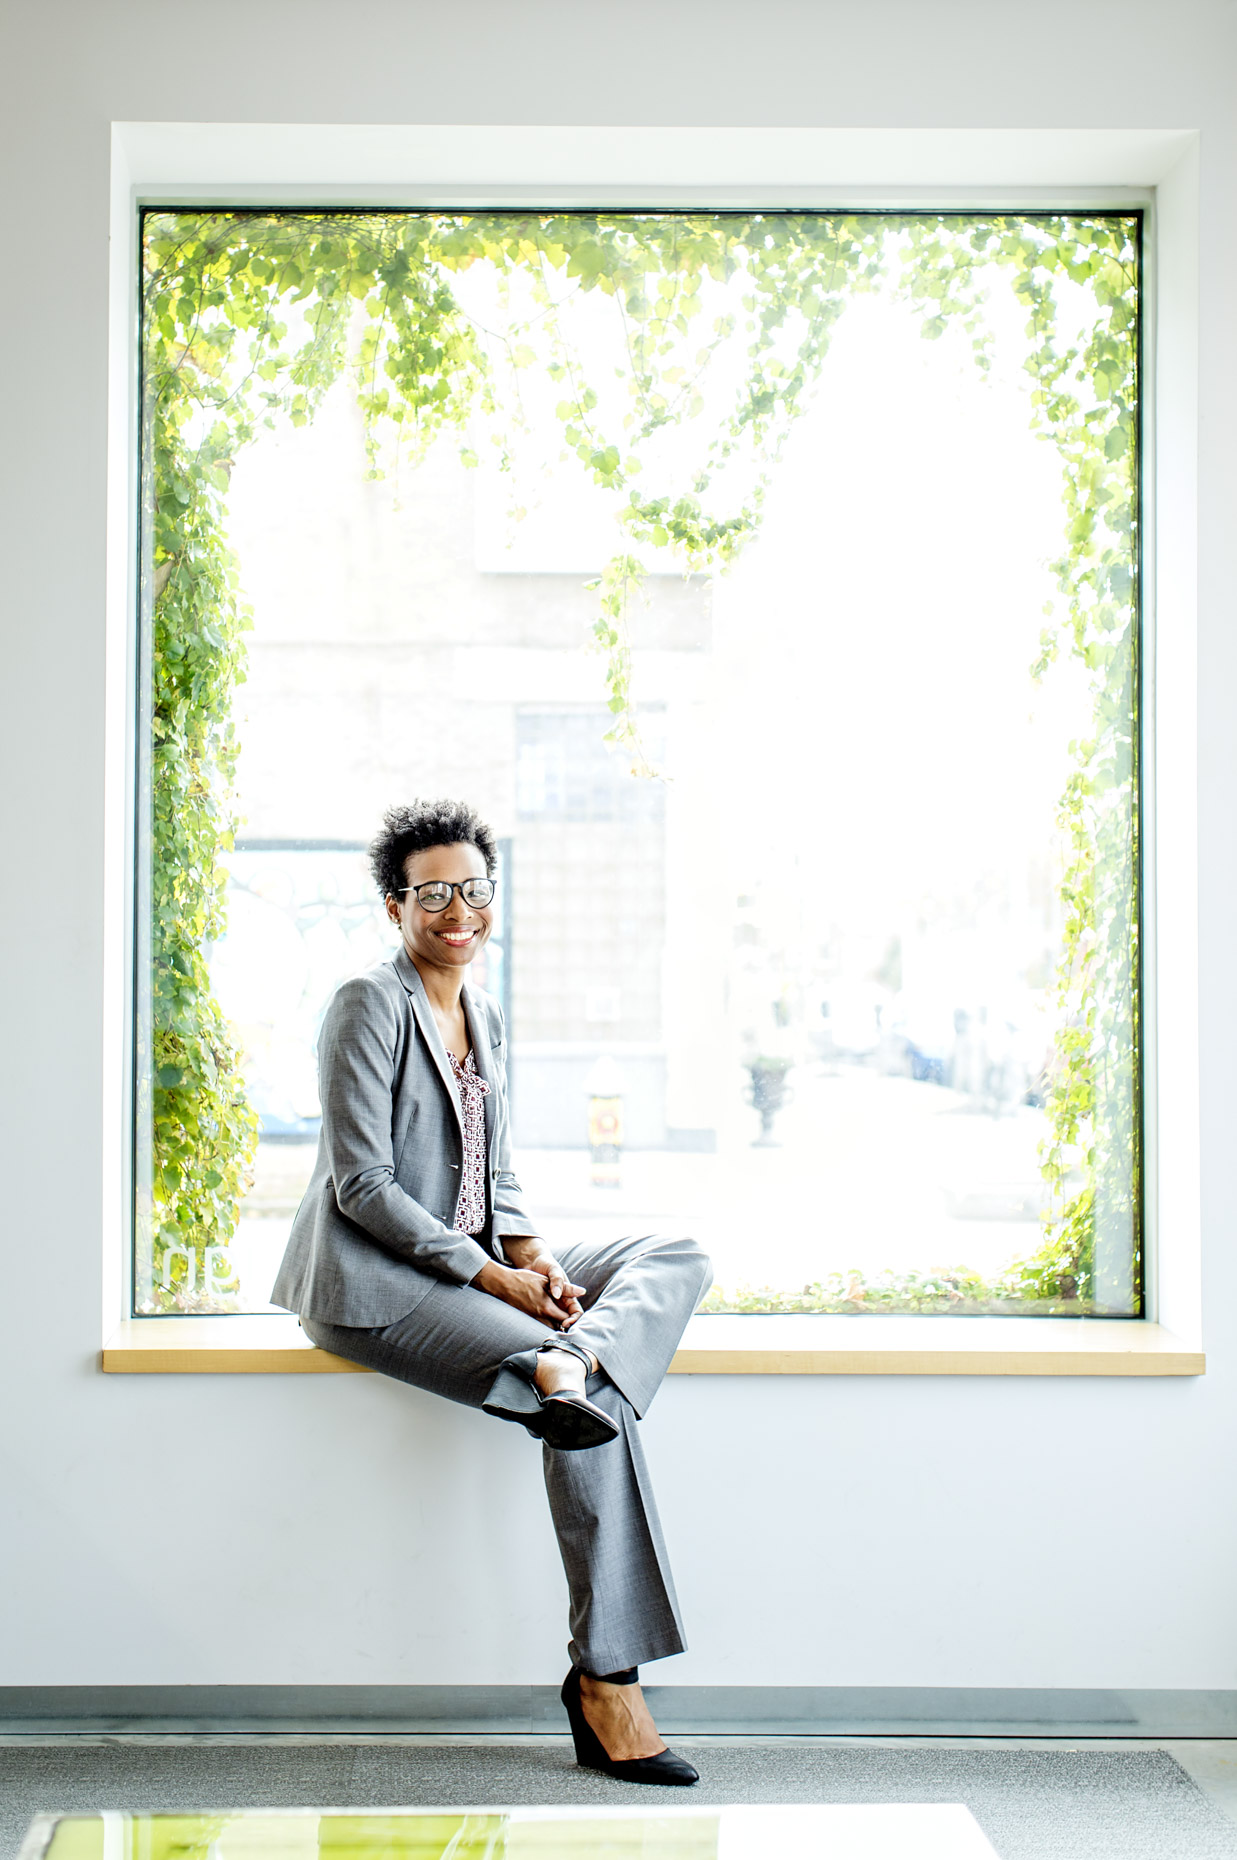 Portrait of black business woman in suit sitting in office window